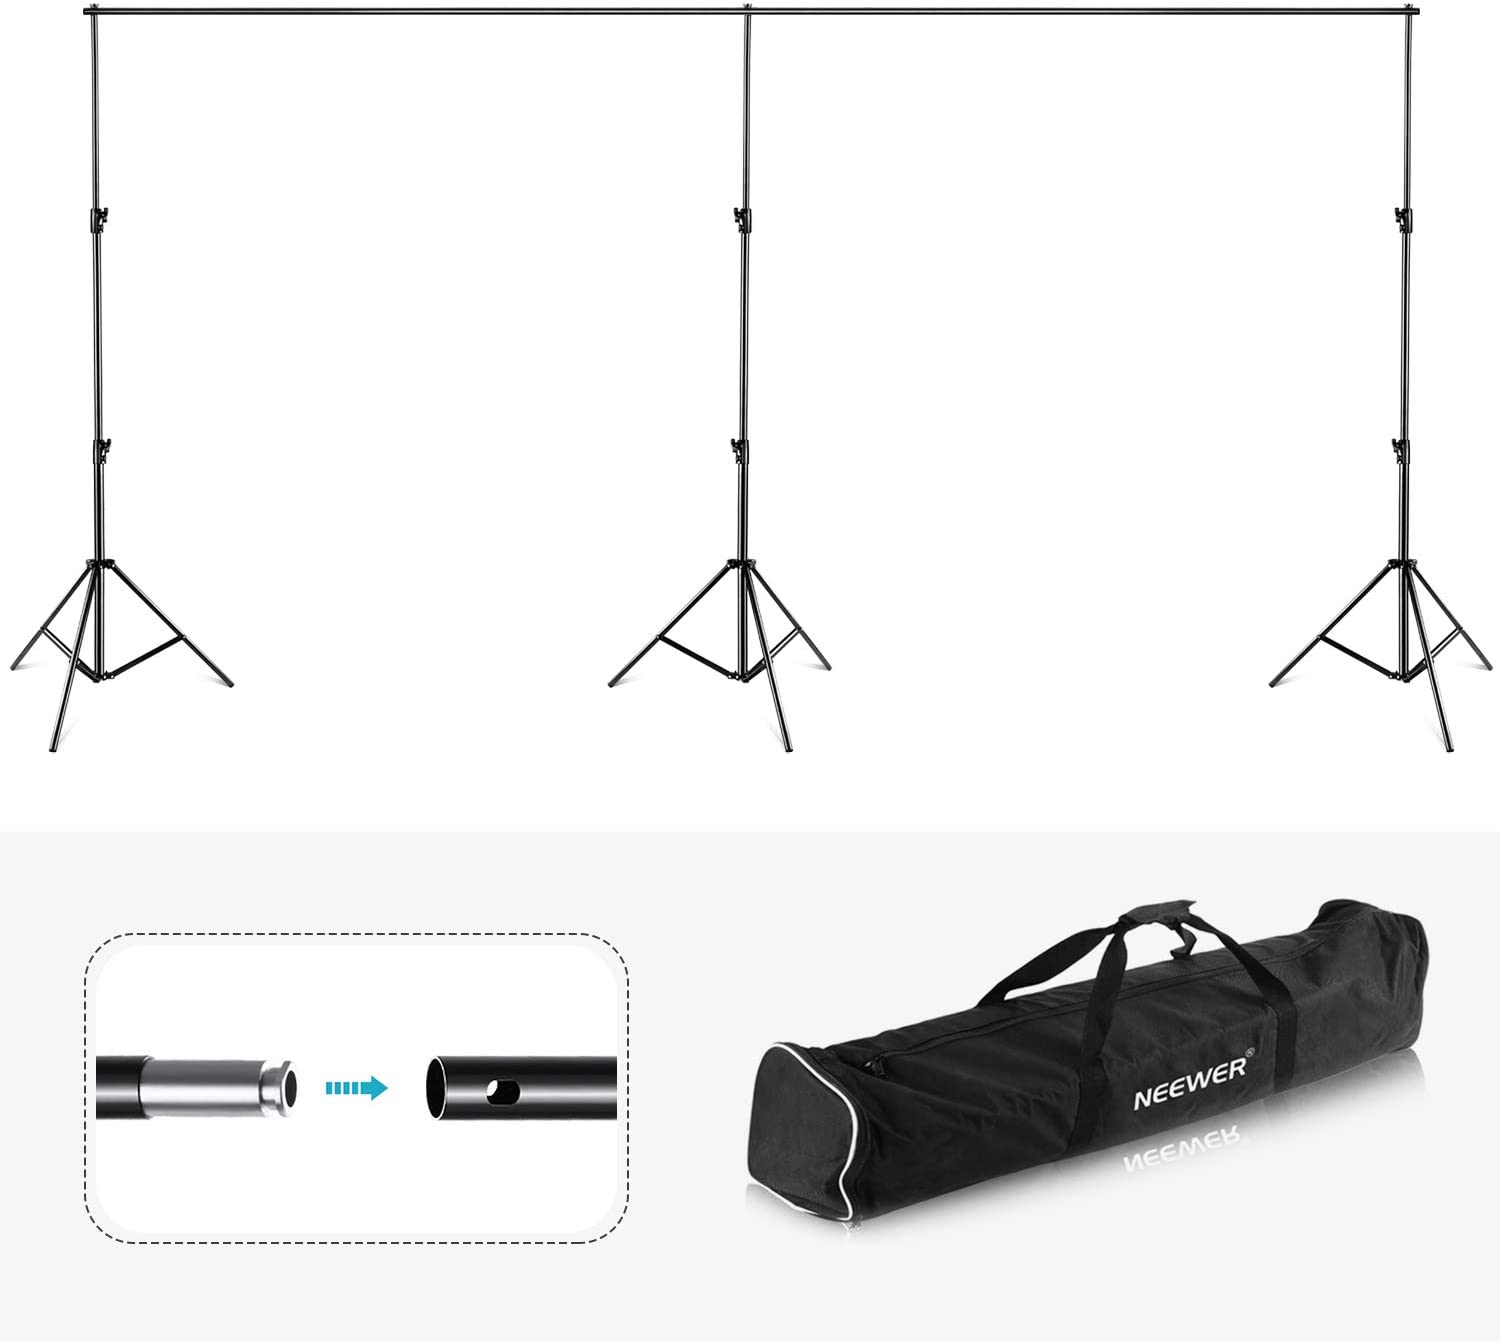 Neewer Telescopic Tube Background Support Pole and Stand with Heavy Duty Base for Photography Backdrop and Trade Show Display W x H Aluminum Alloy 10 x 8 feet Adjustable Frame